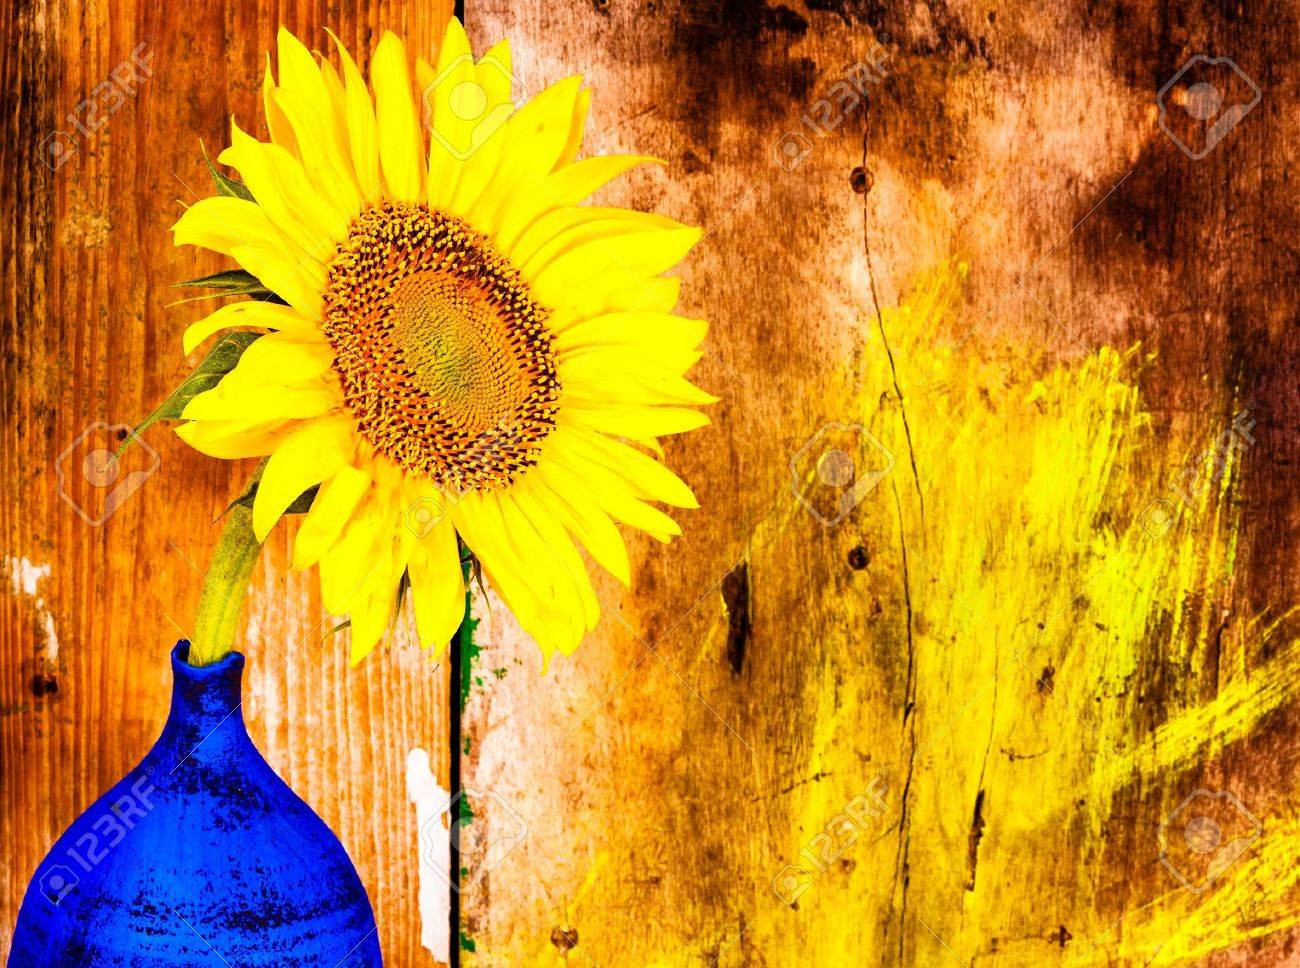 Sunflower On A Blue Vase With Grunge Rustic Wooden Background